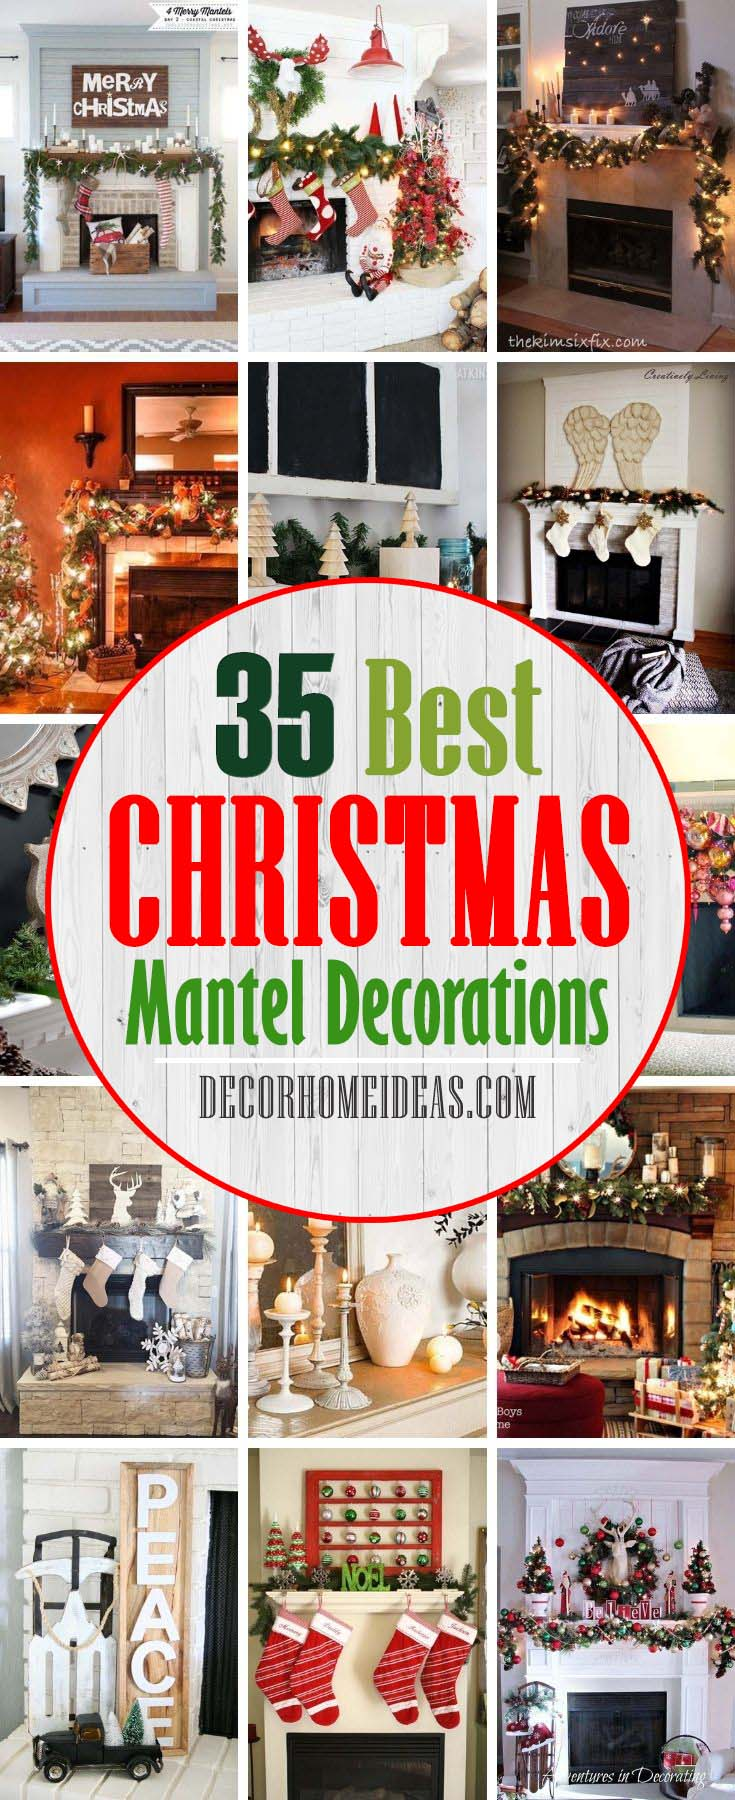 Best Christmas Mantel Decoration Ideas. To inspire your Christmas mantel decorating, we've included options that will suit every style and aesthetic. From farmhouse style, like repurposed crates and windows, to modern black-and-white color palettes, we've made choosing your Christmas decorations much easier. #decorhomeideas